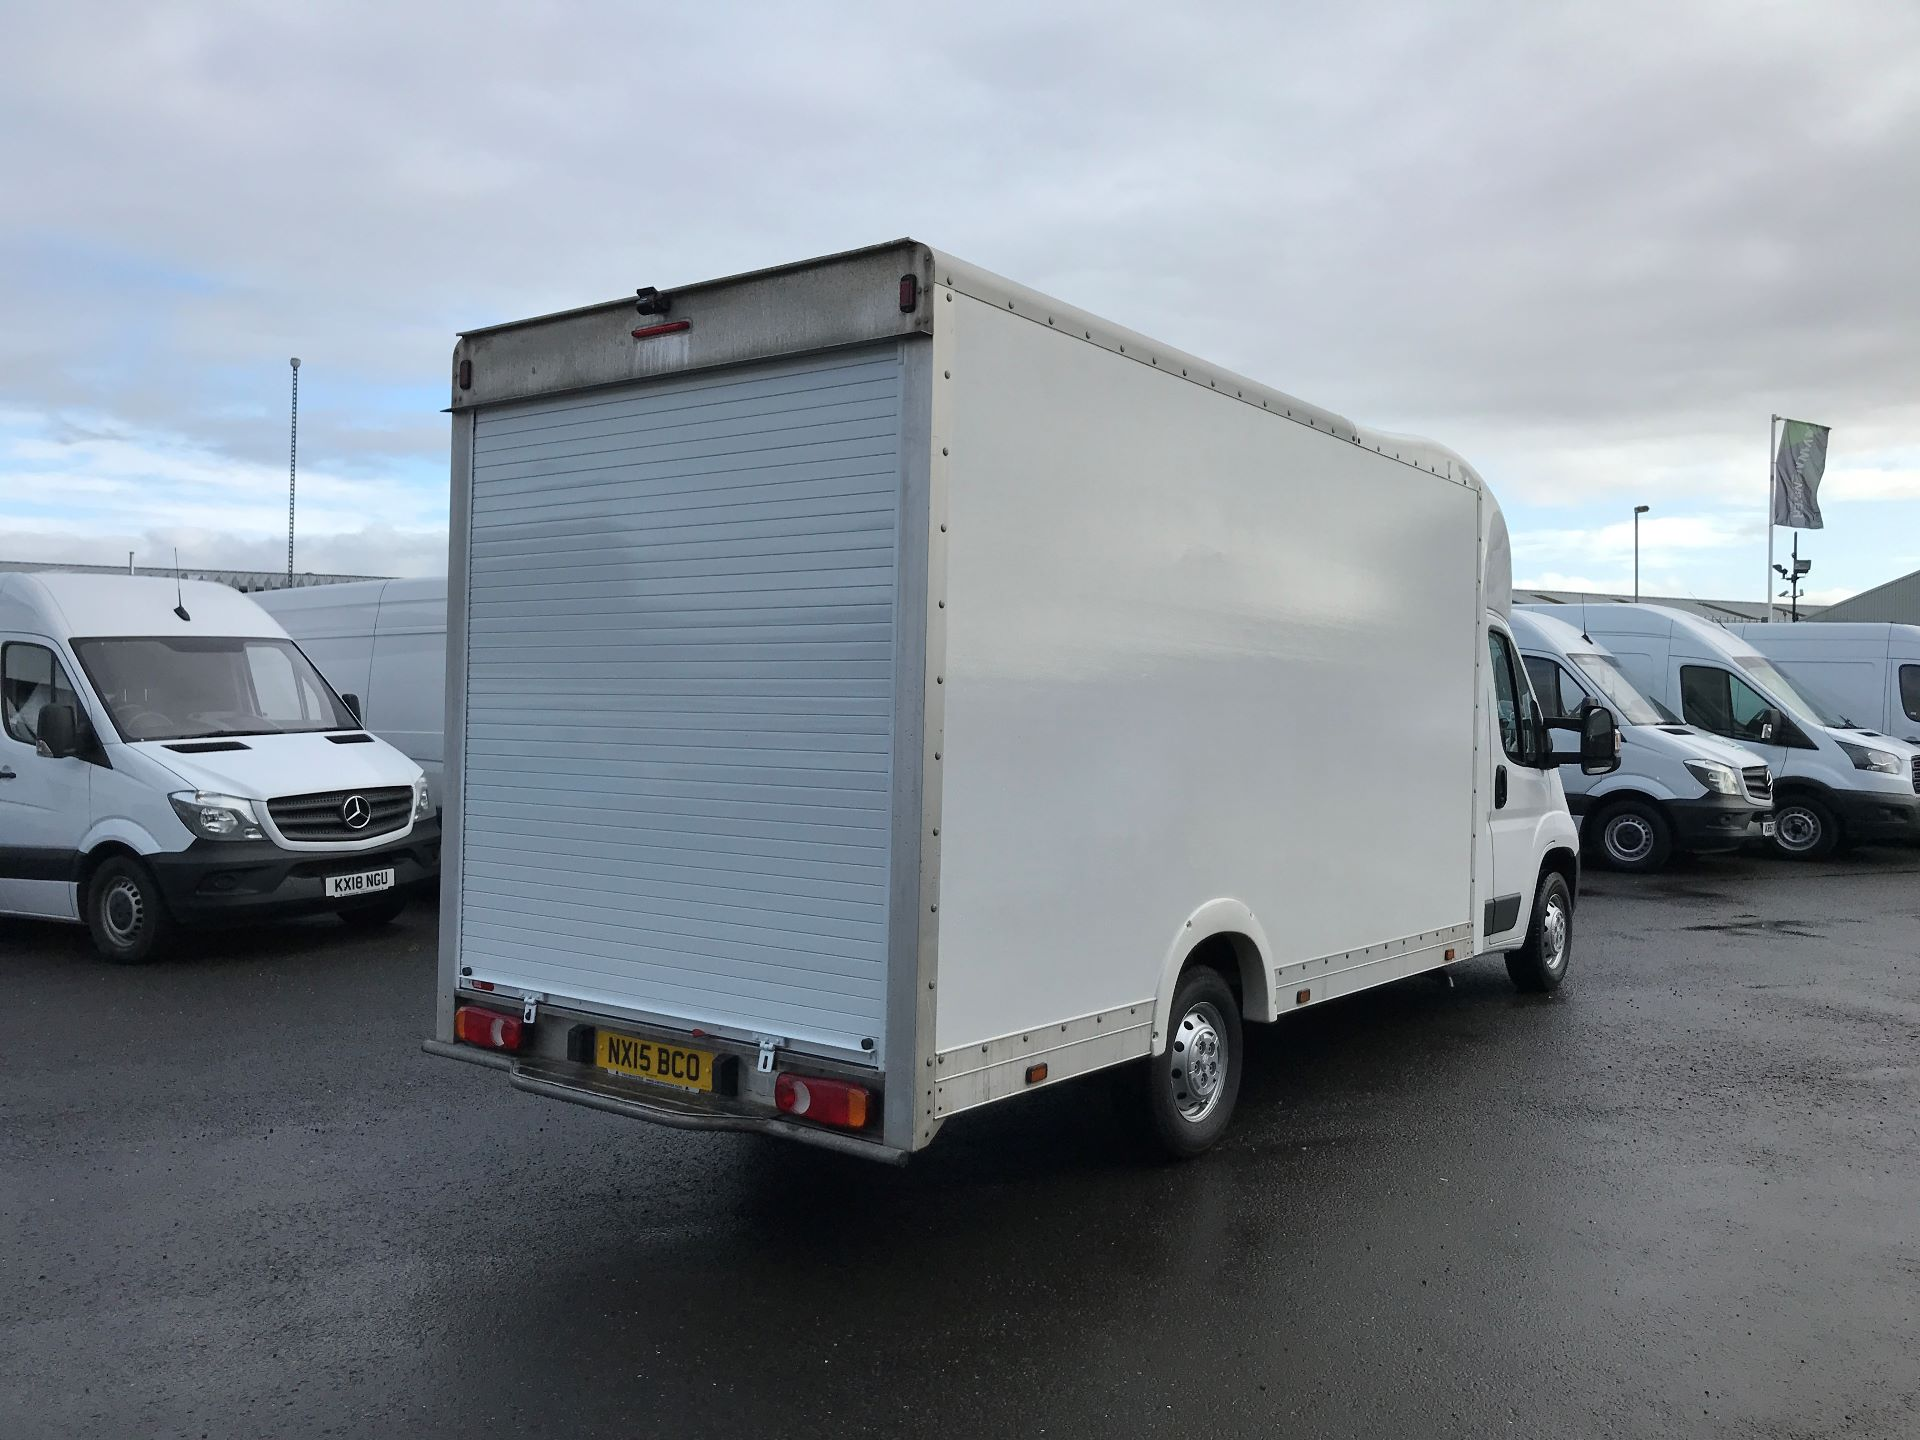 2015 Peugeot Boxer 335 L3 2.2 HDI 130PS LUTON LOW LOADER (NX15BCO) Thumbnail 8